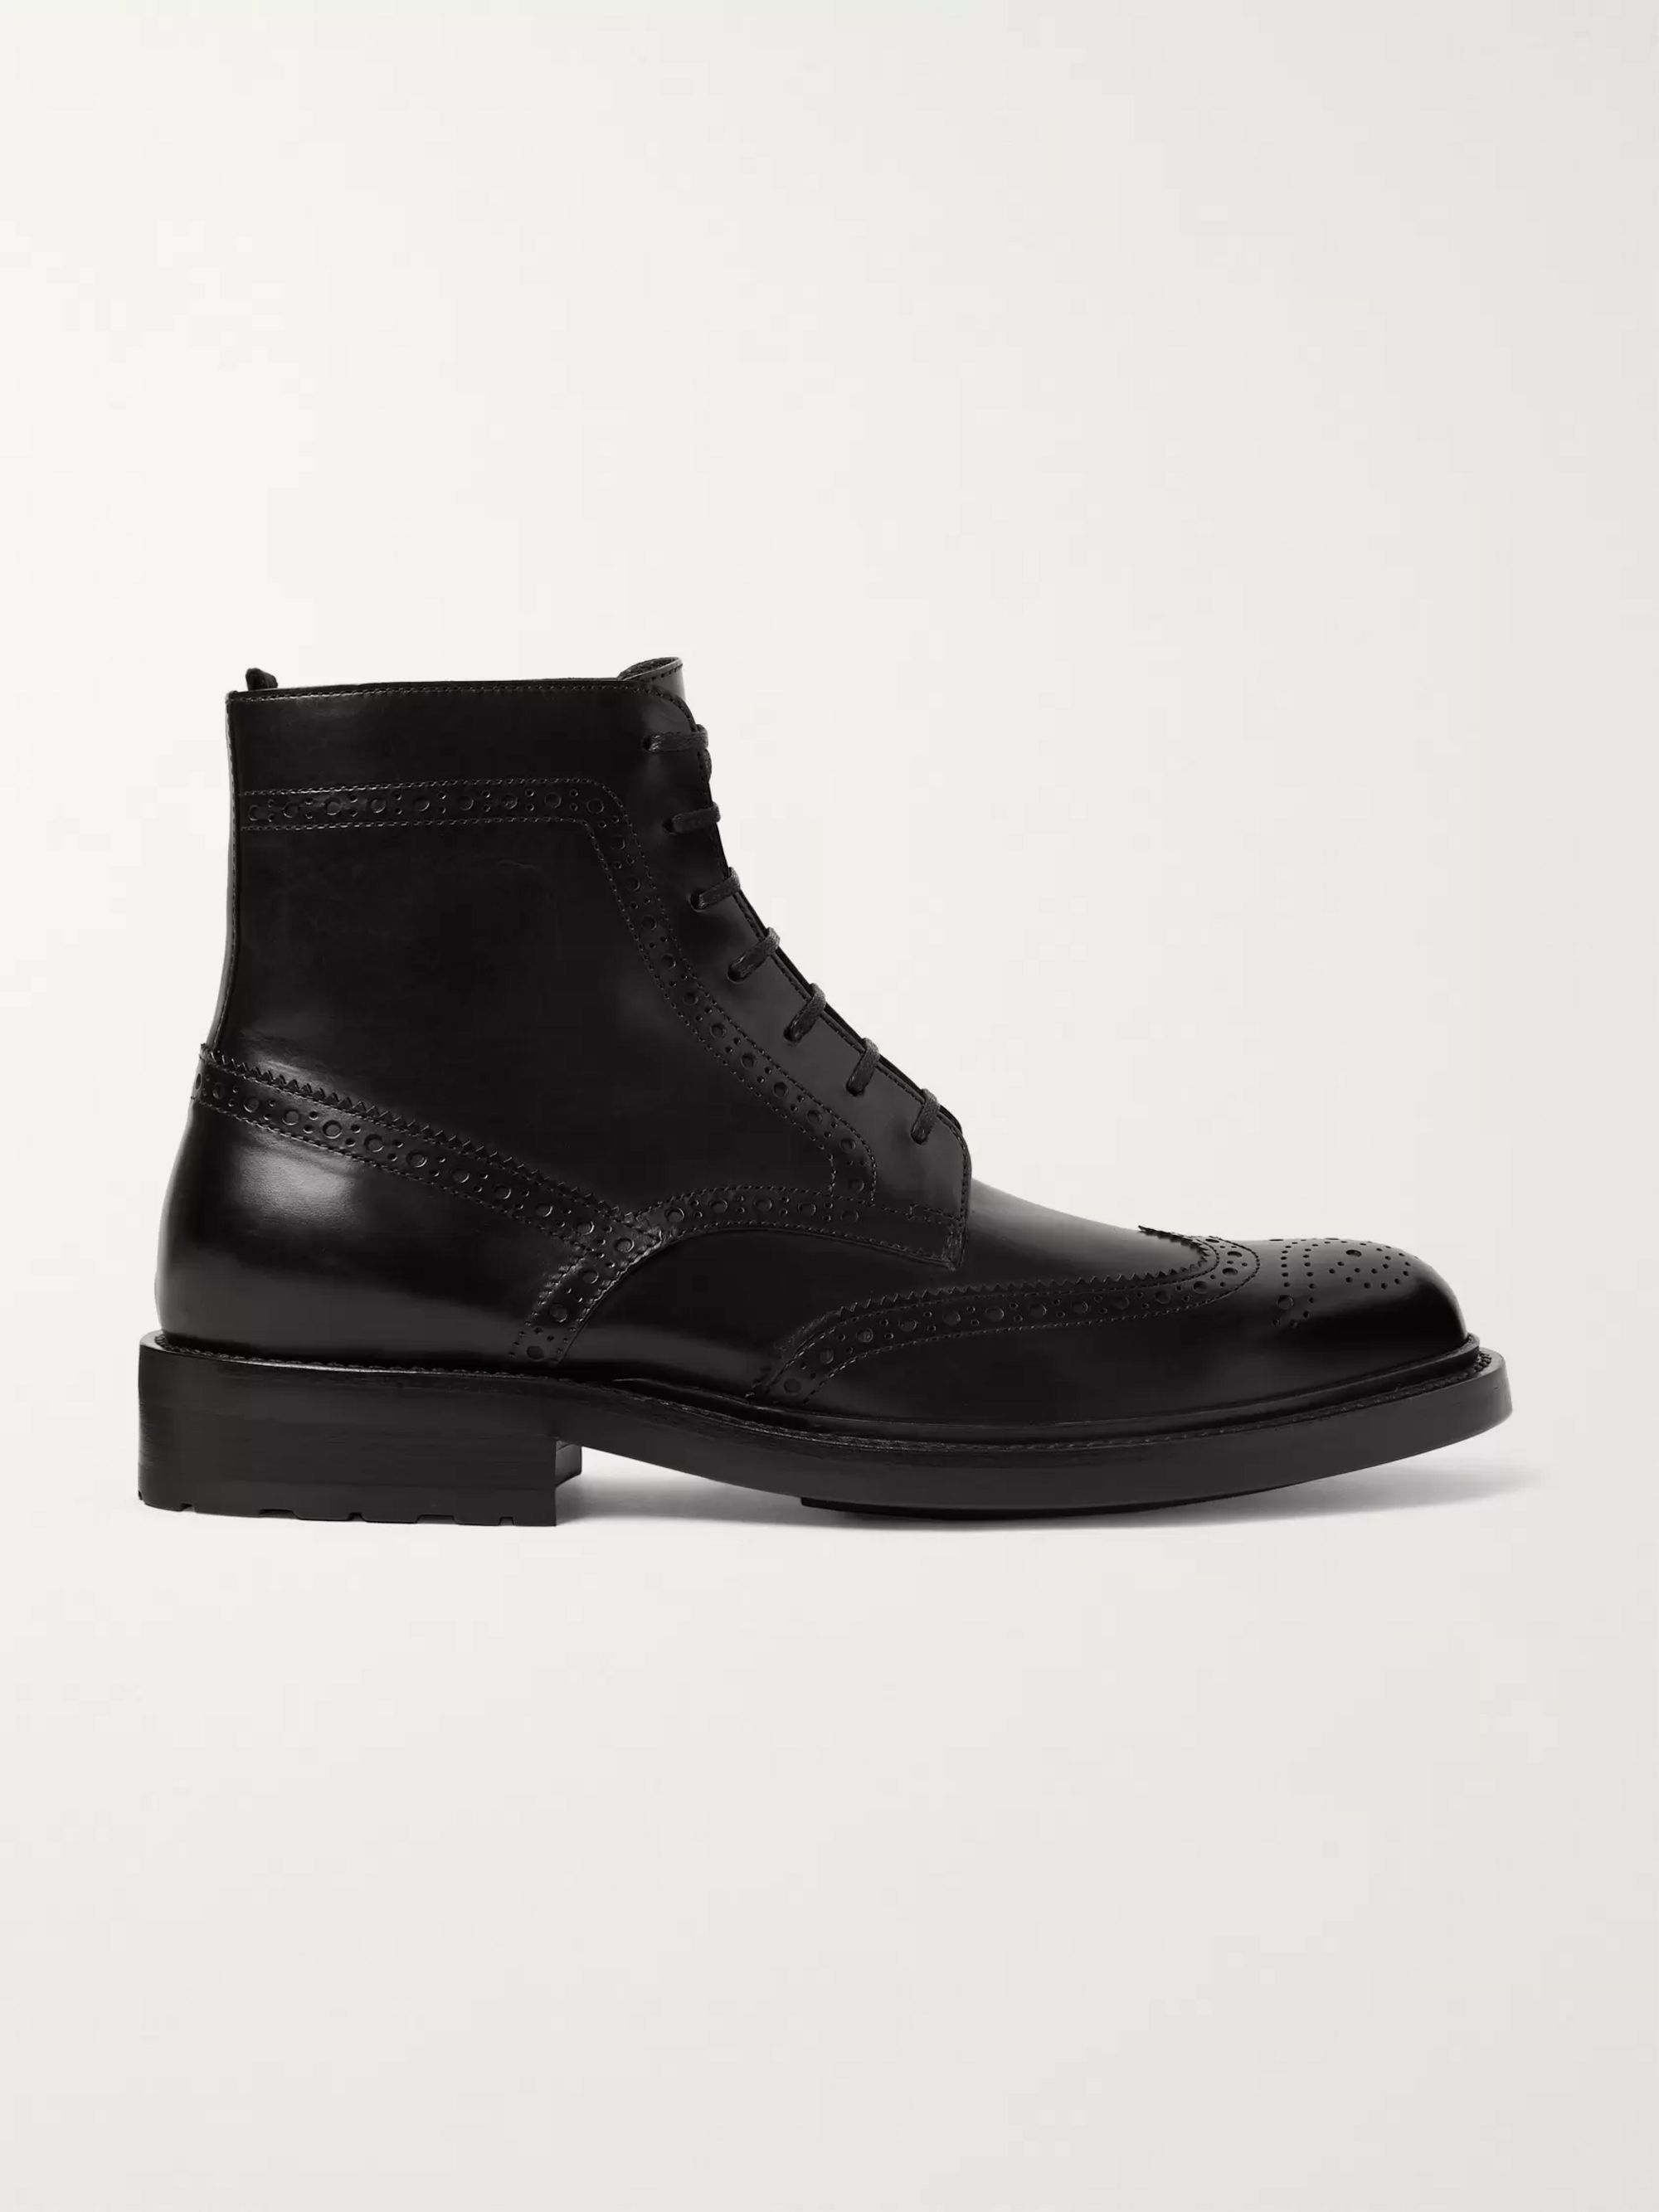 SAINT LAURENT Polished-Leather Wingtip Brogue Boots